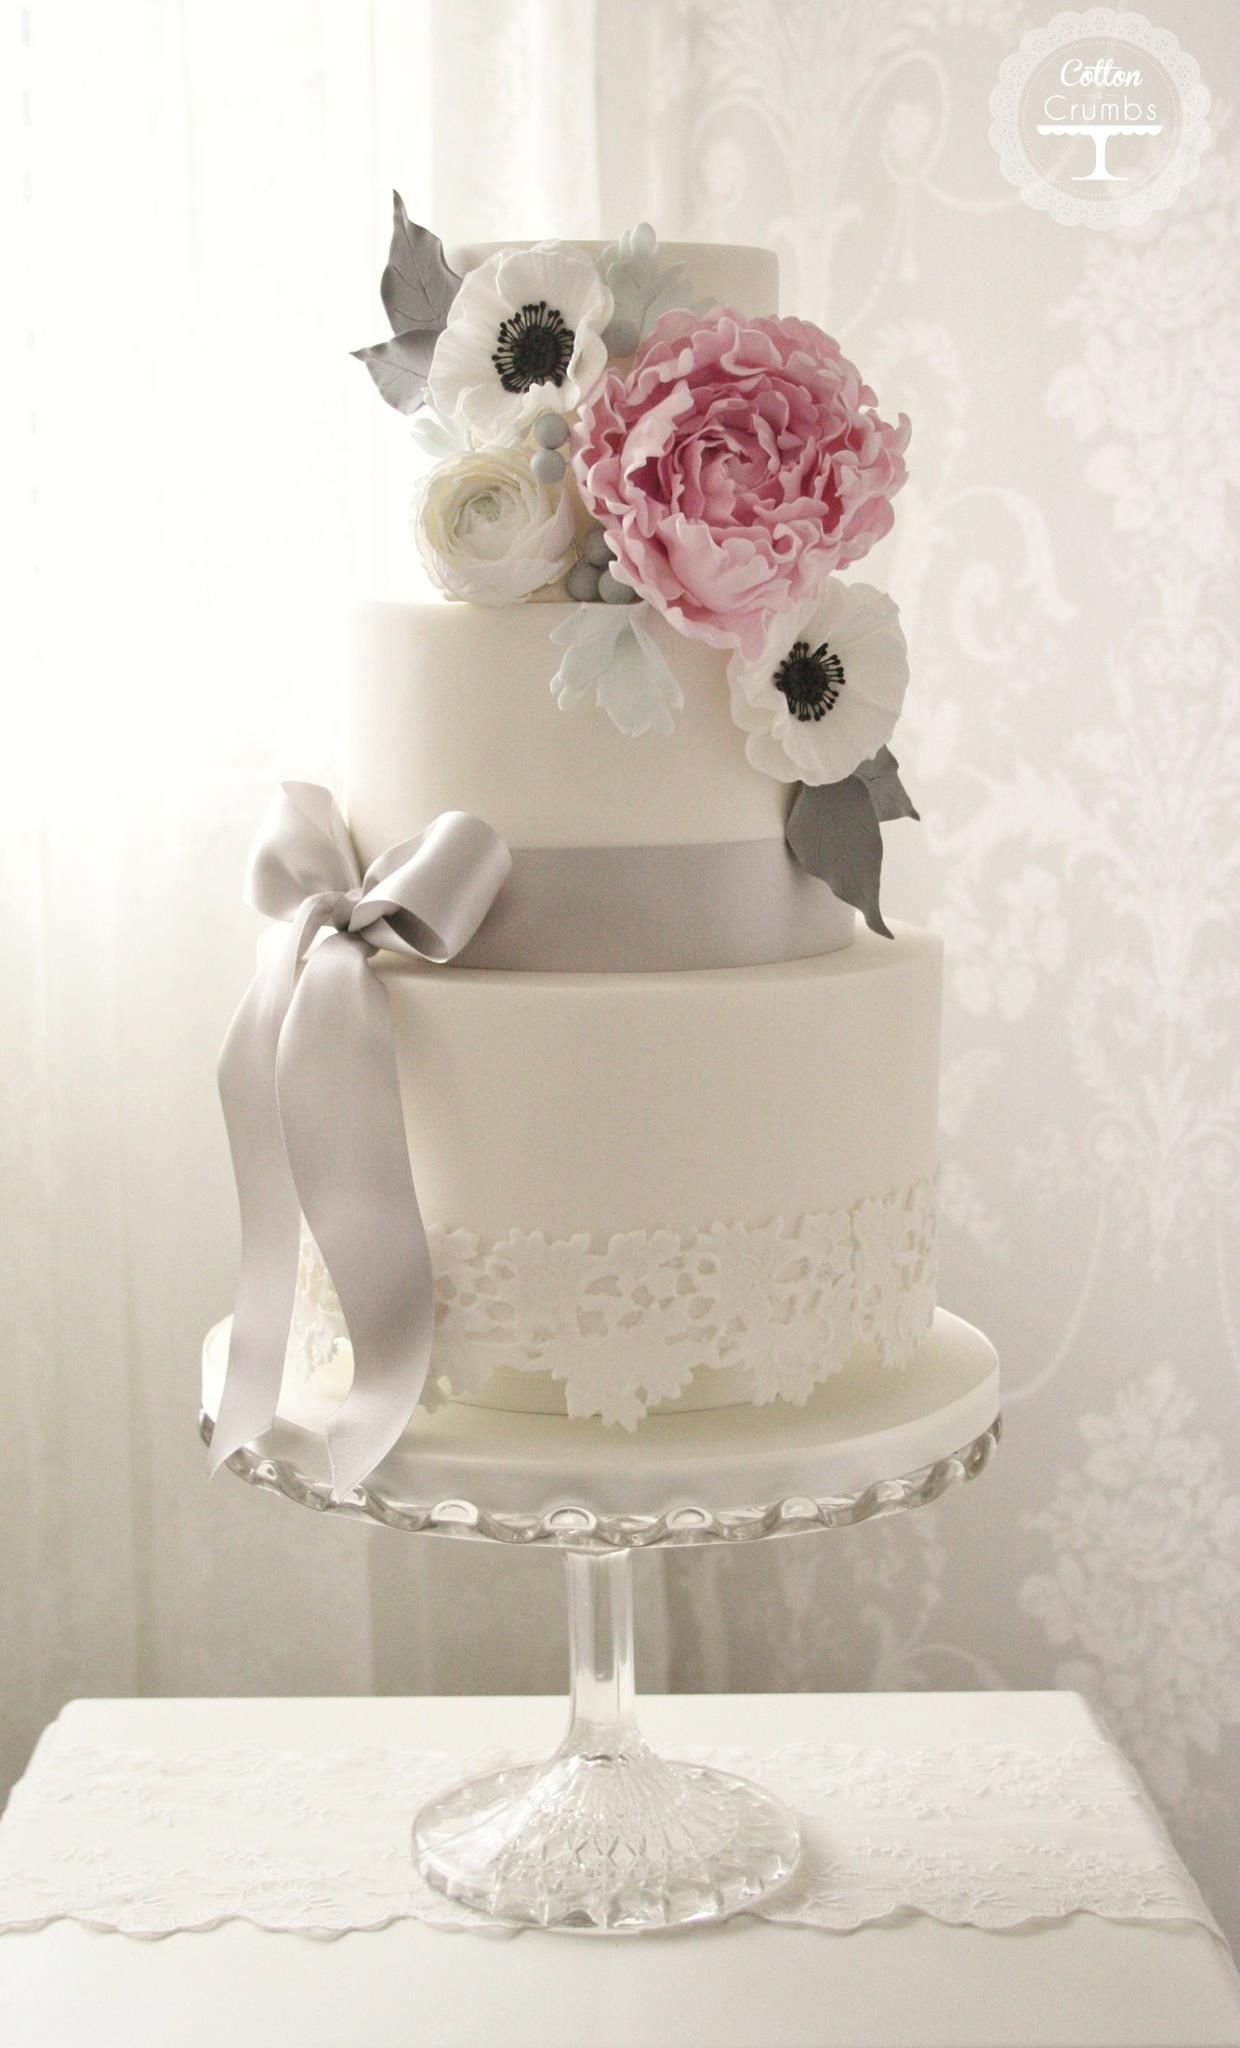 Wedding cakes with exceptional details creative featured and wedding